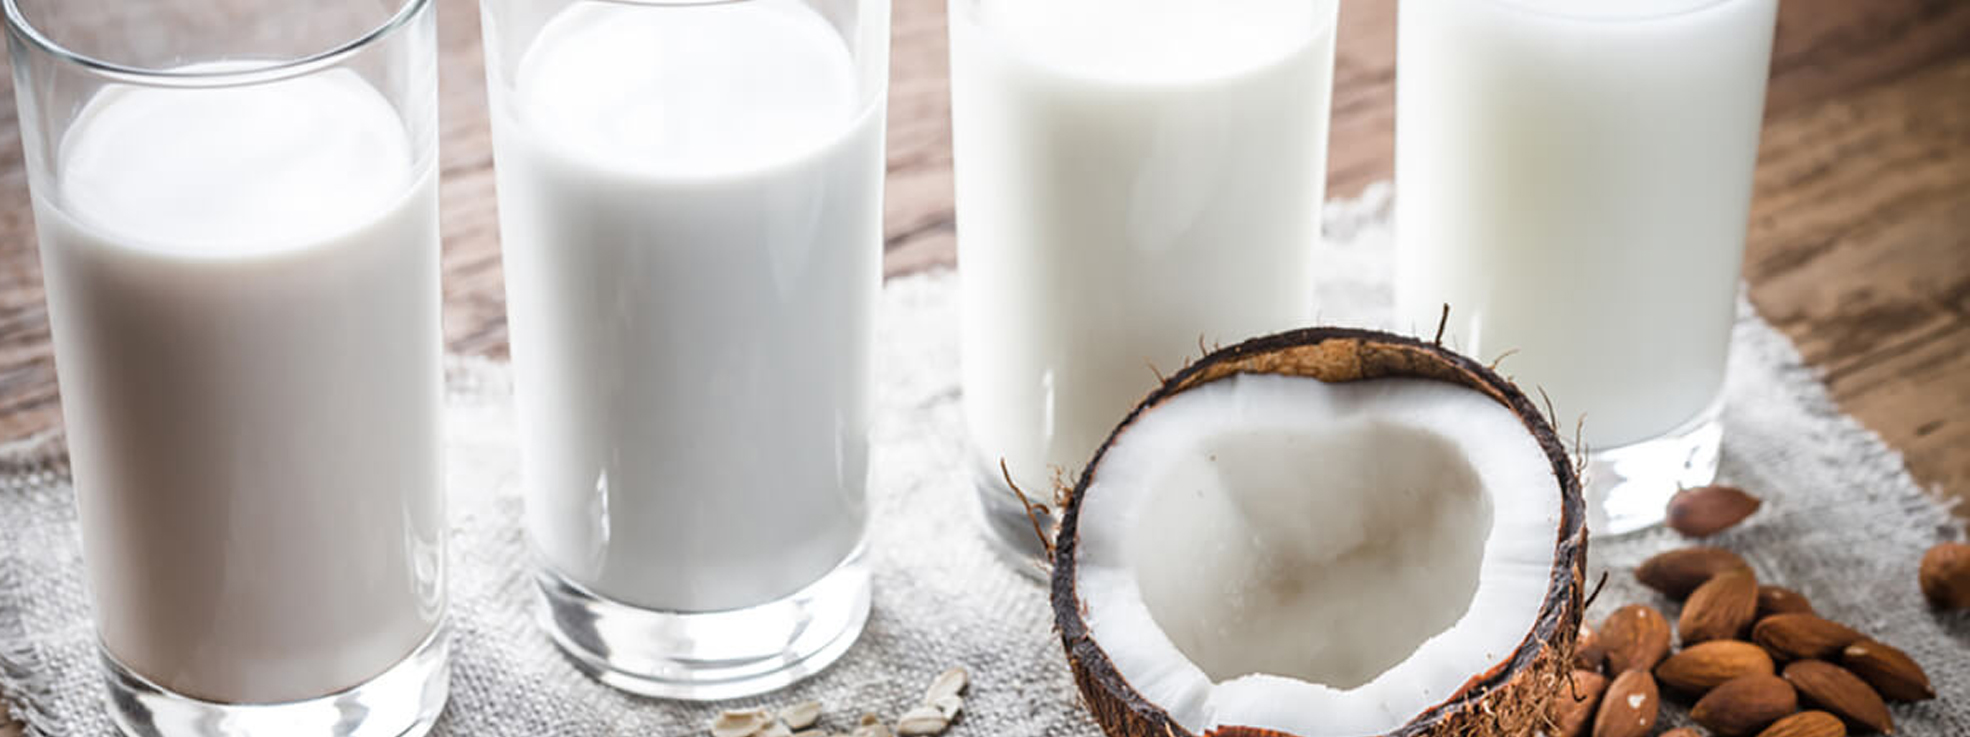 Lactose Intolerant? Alternatives To Your Dairy Milk